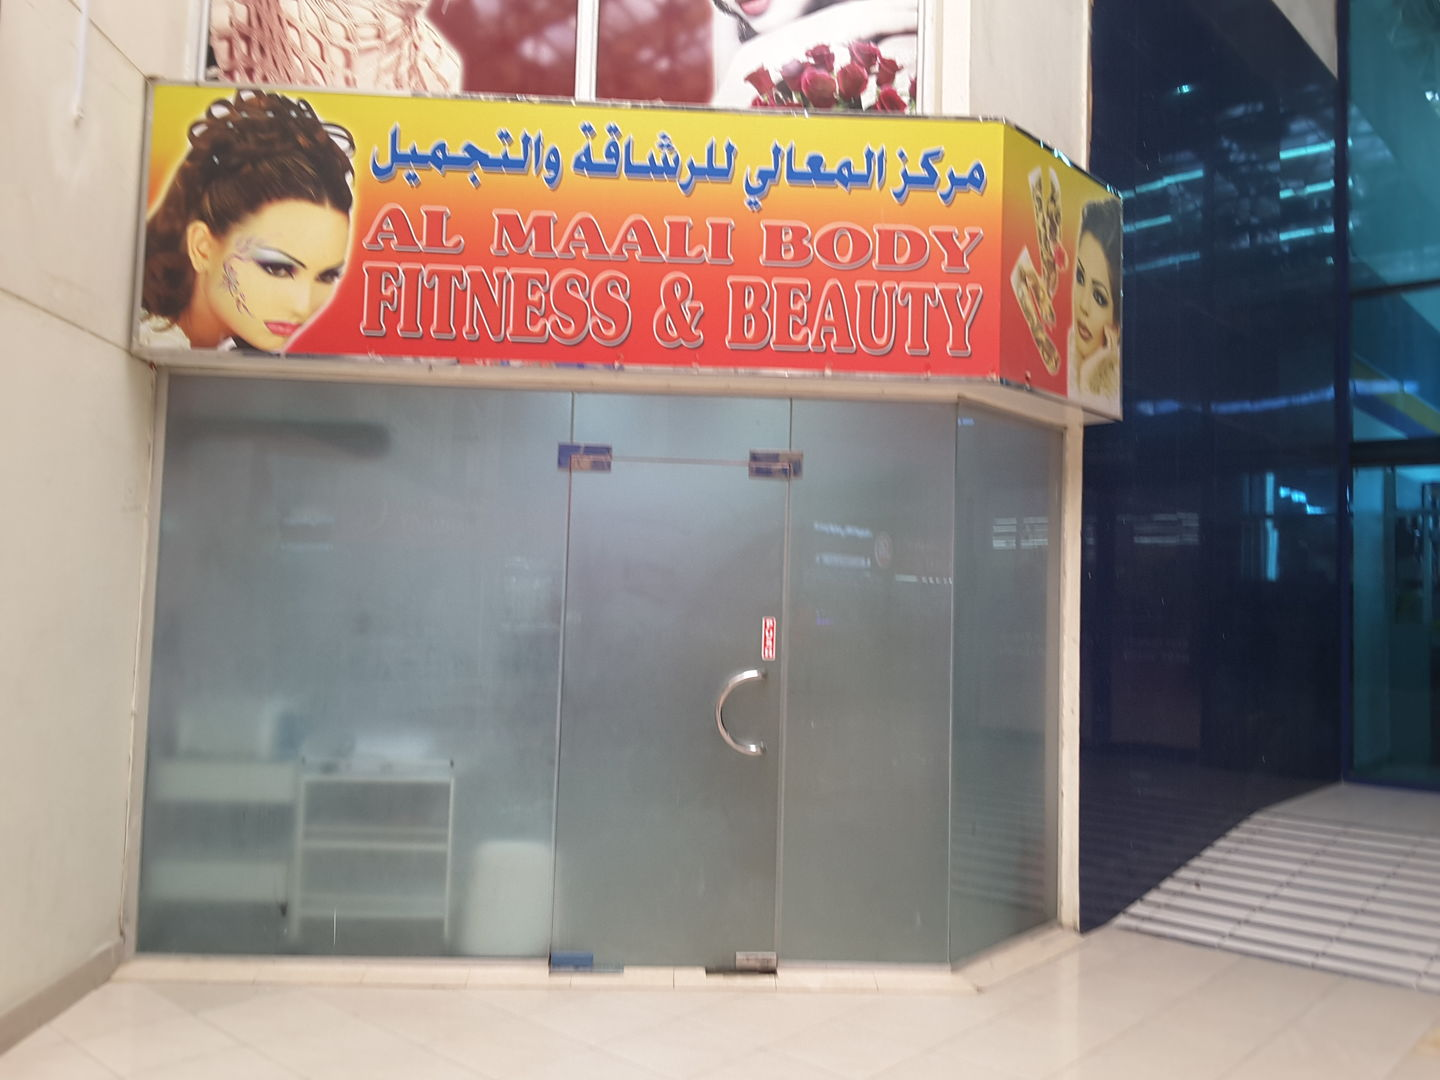 HiDubai-business-al-maali-body-fitness-beauty-beauty-wellness-health-beauty-salons-al-rashidiya-dubai-2